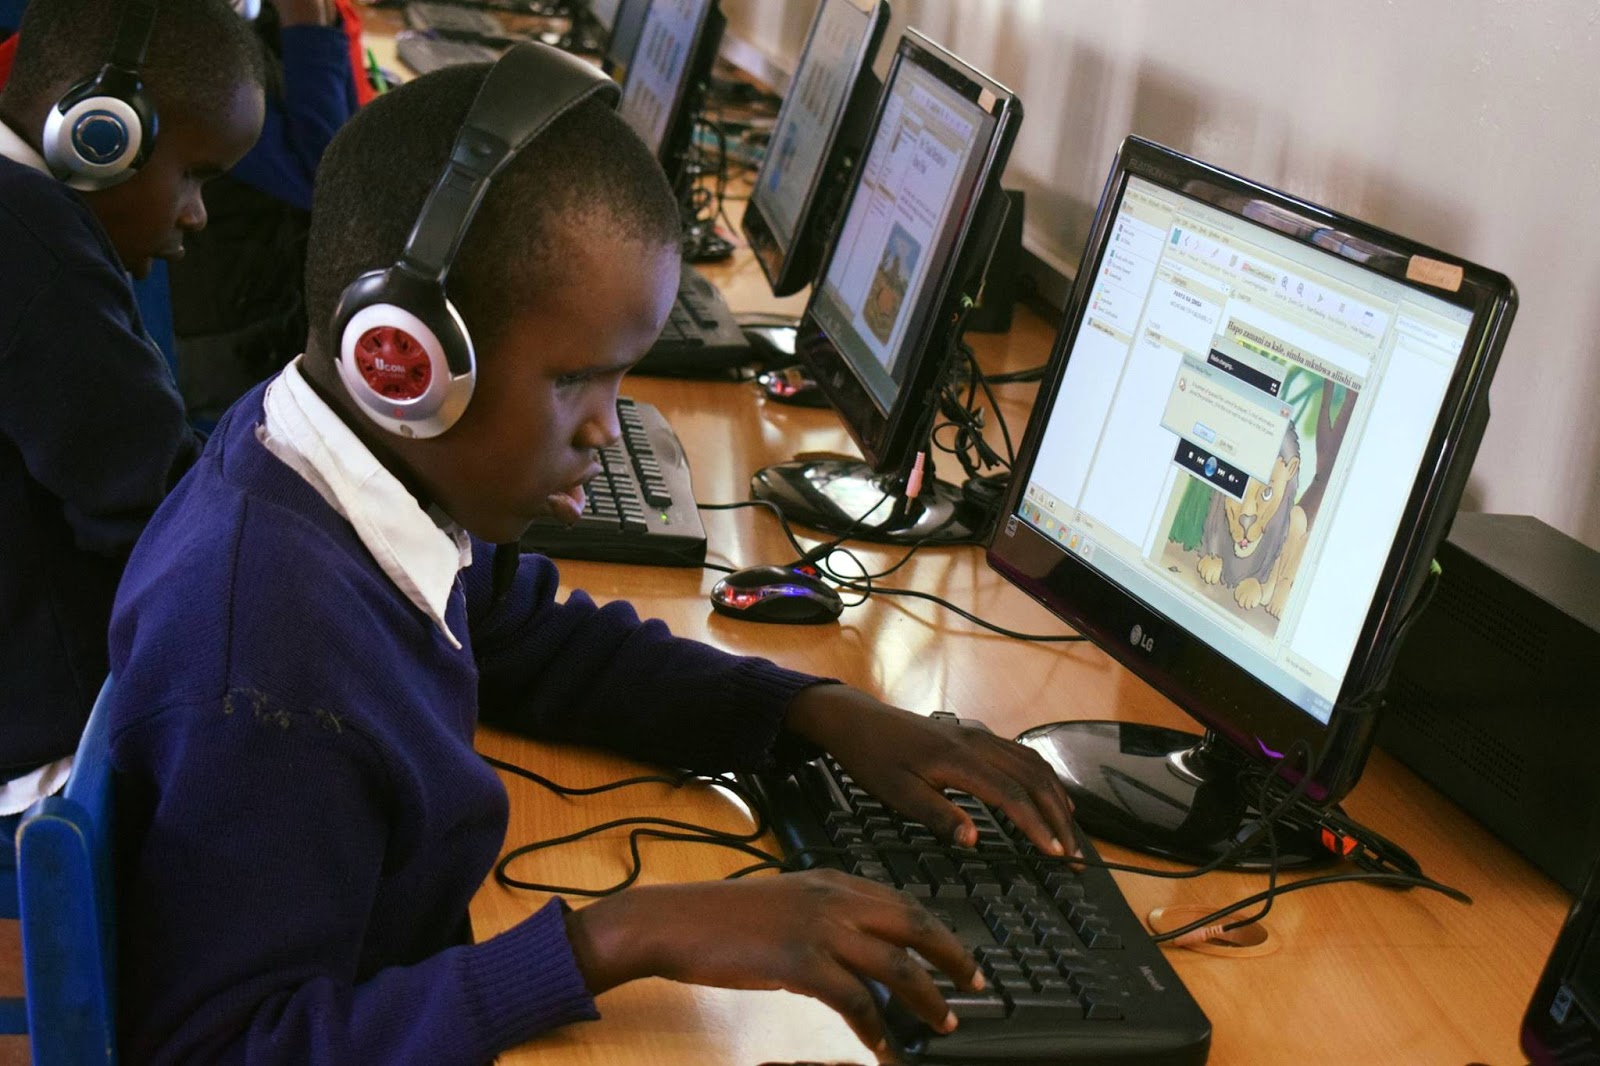 Student at Thika Primary School for the Visually Impaired using accessible ebooks on a laptop.